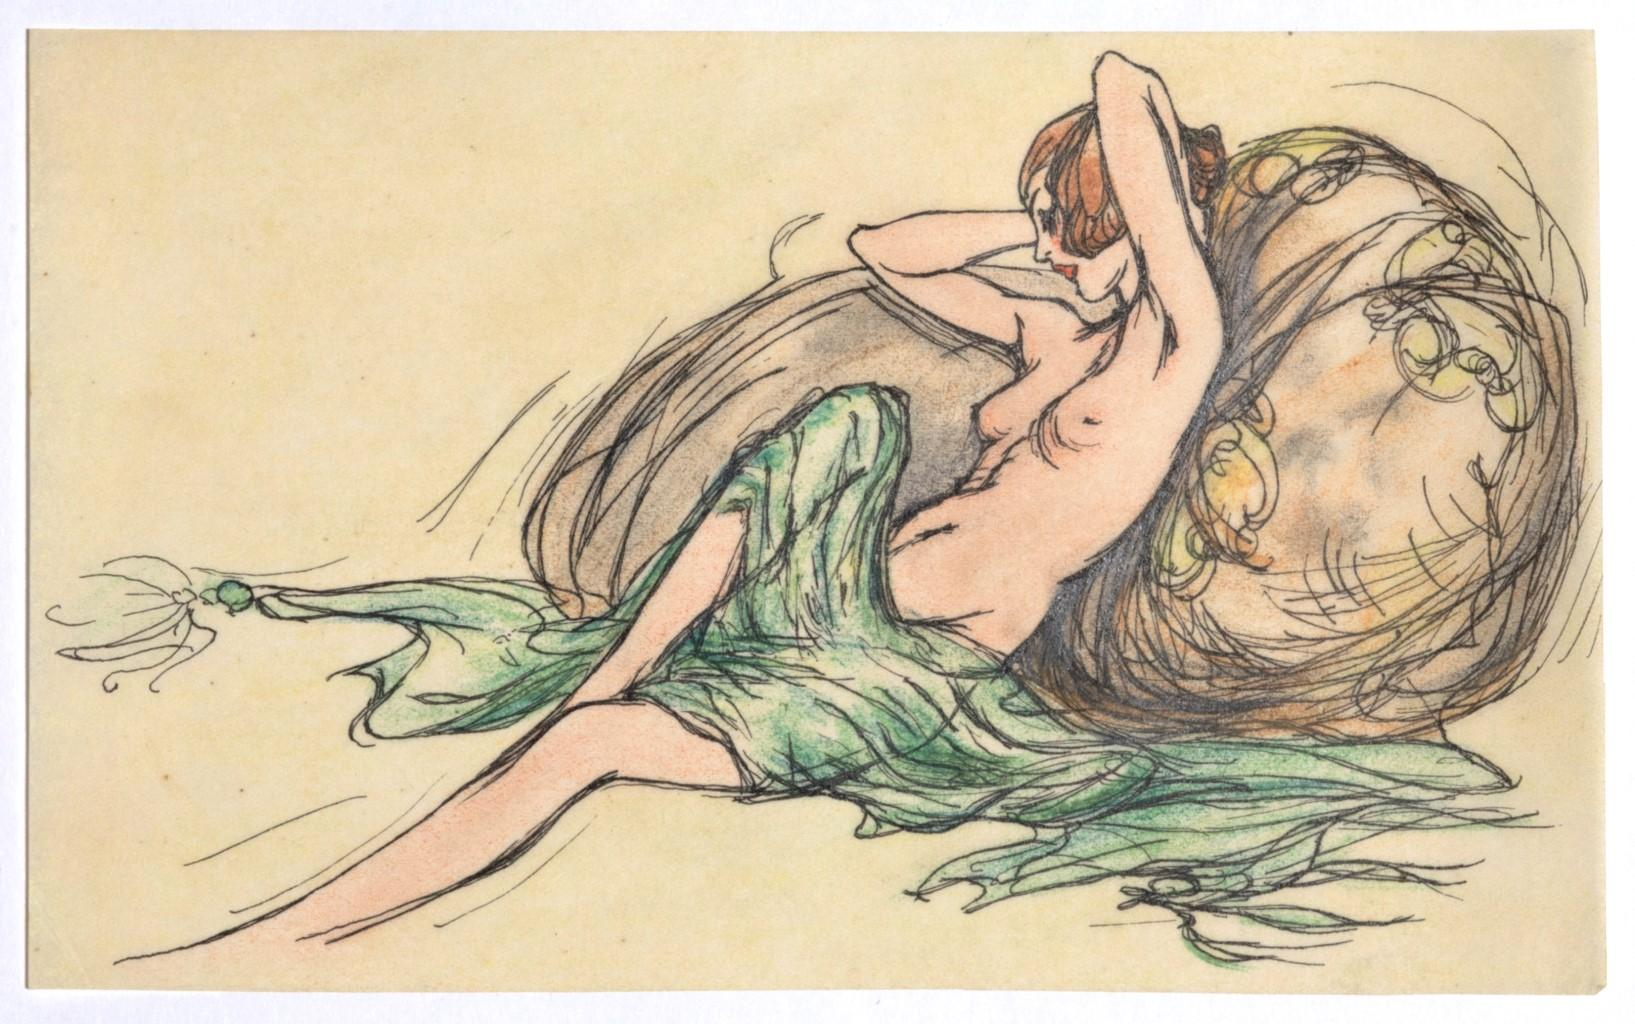 Nude - Original Ink and Watercolor on Paper - 20th Century